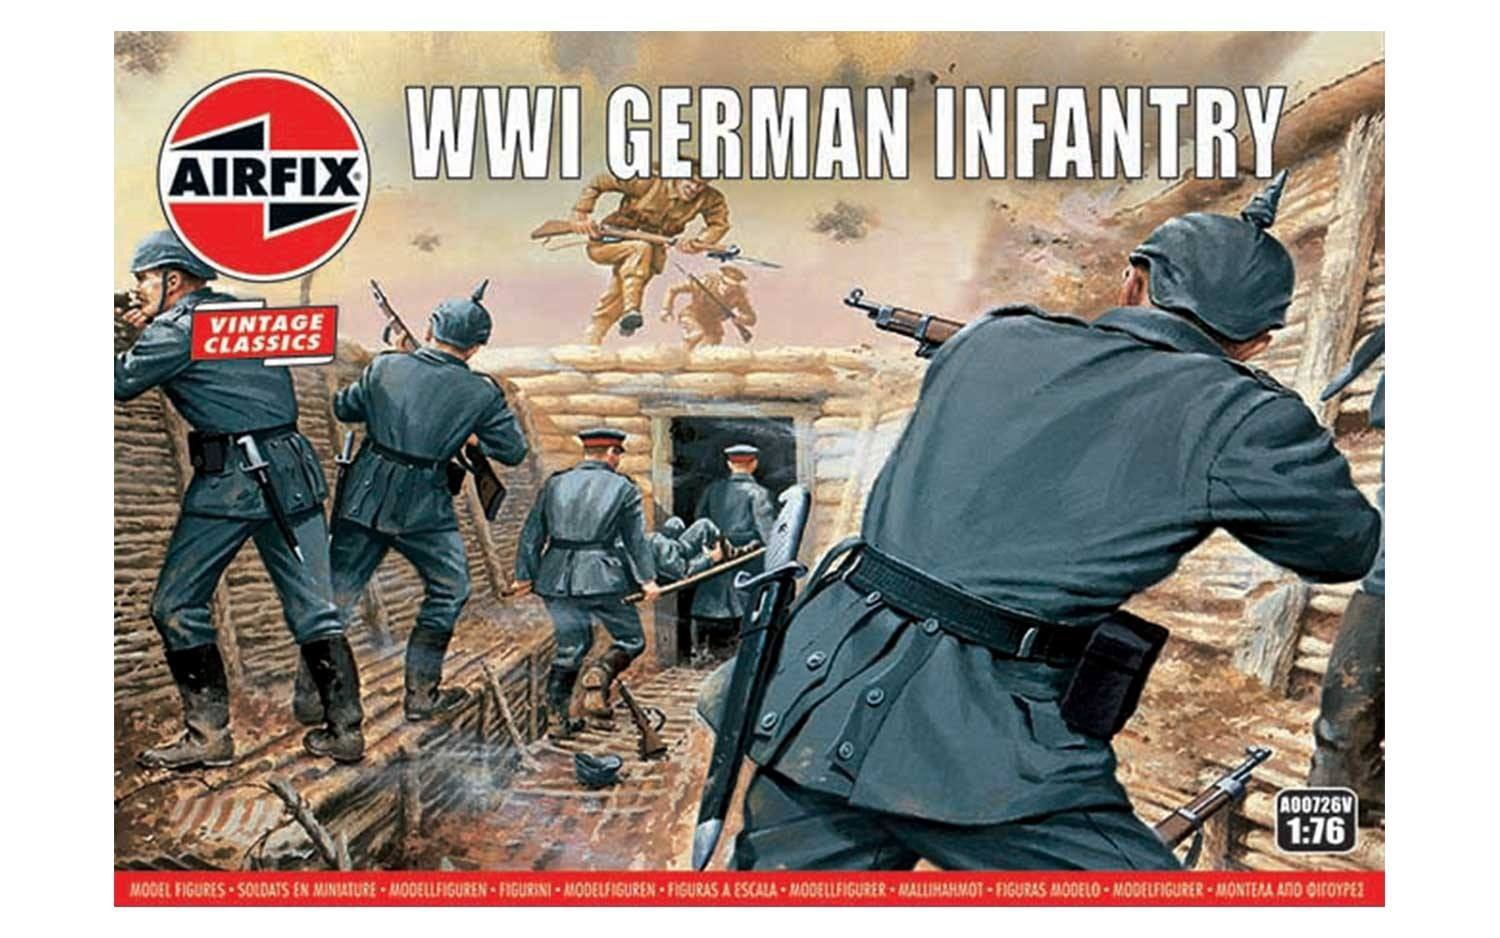 Airfix #A00726V 1/76 WWI German Infantry